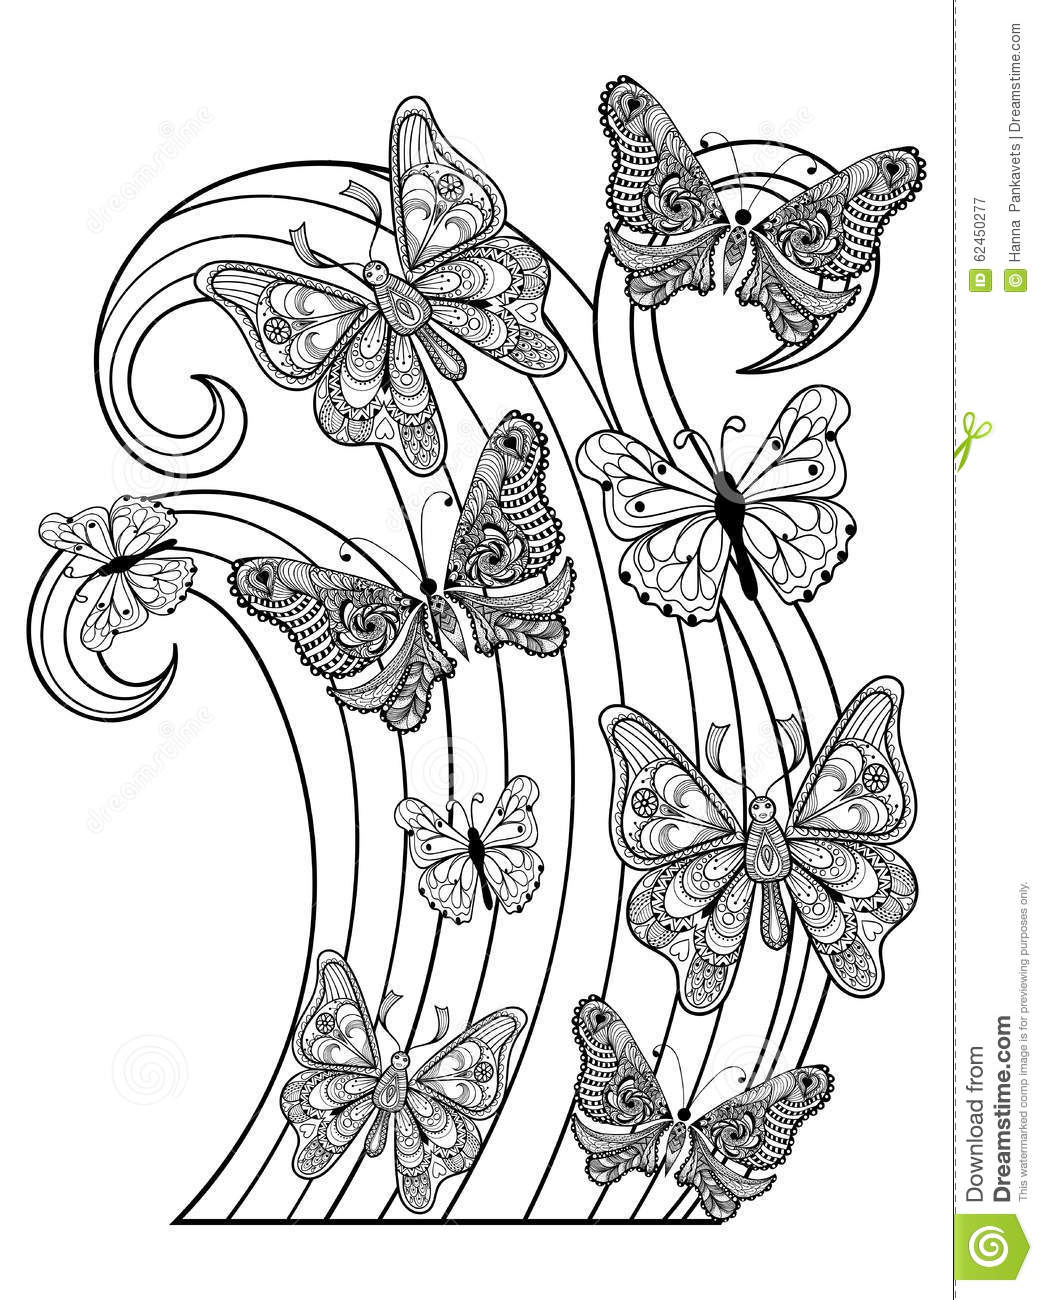 Zentangle vector flying Butterflies for adult anti stress coloring ...